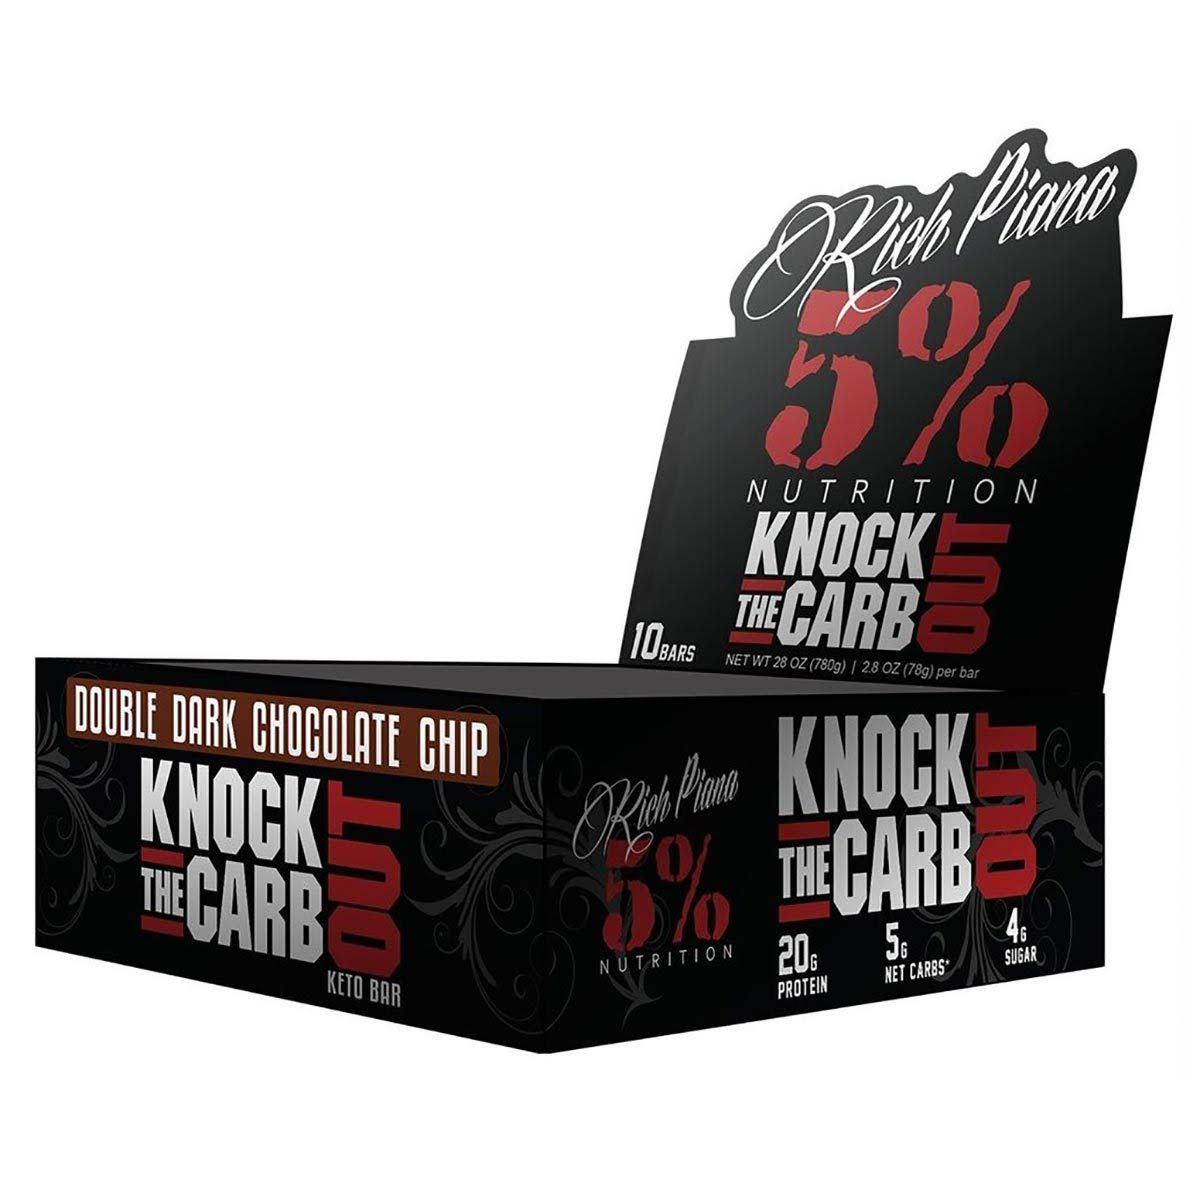 5% Nutrition Knock The Carb Out 10/Box - Chocolate Chip Cookie Dough